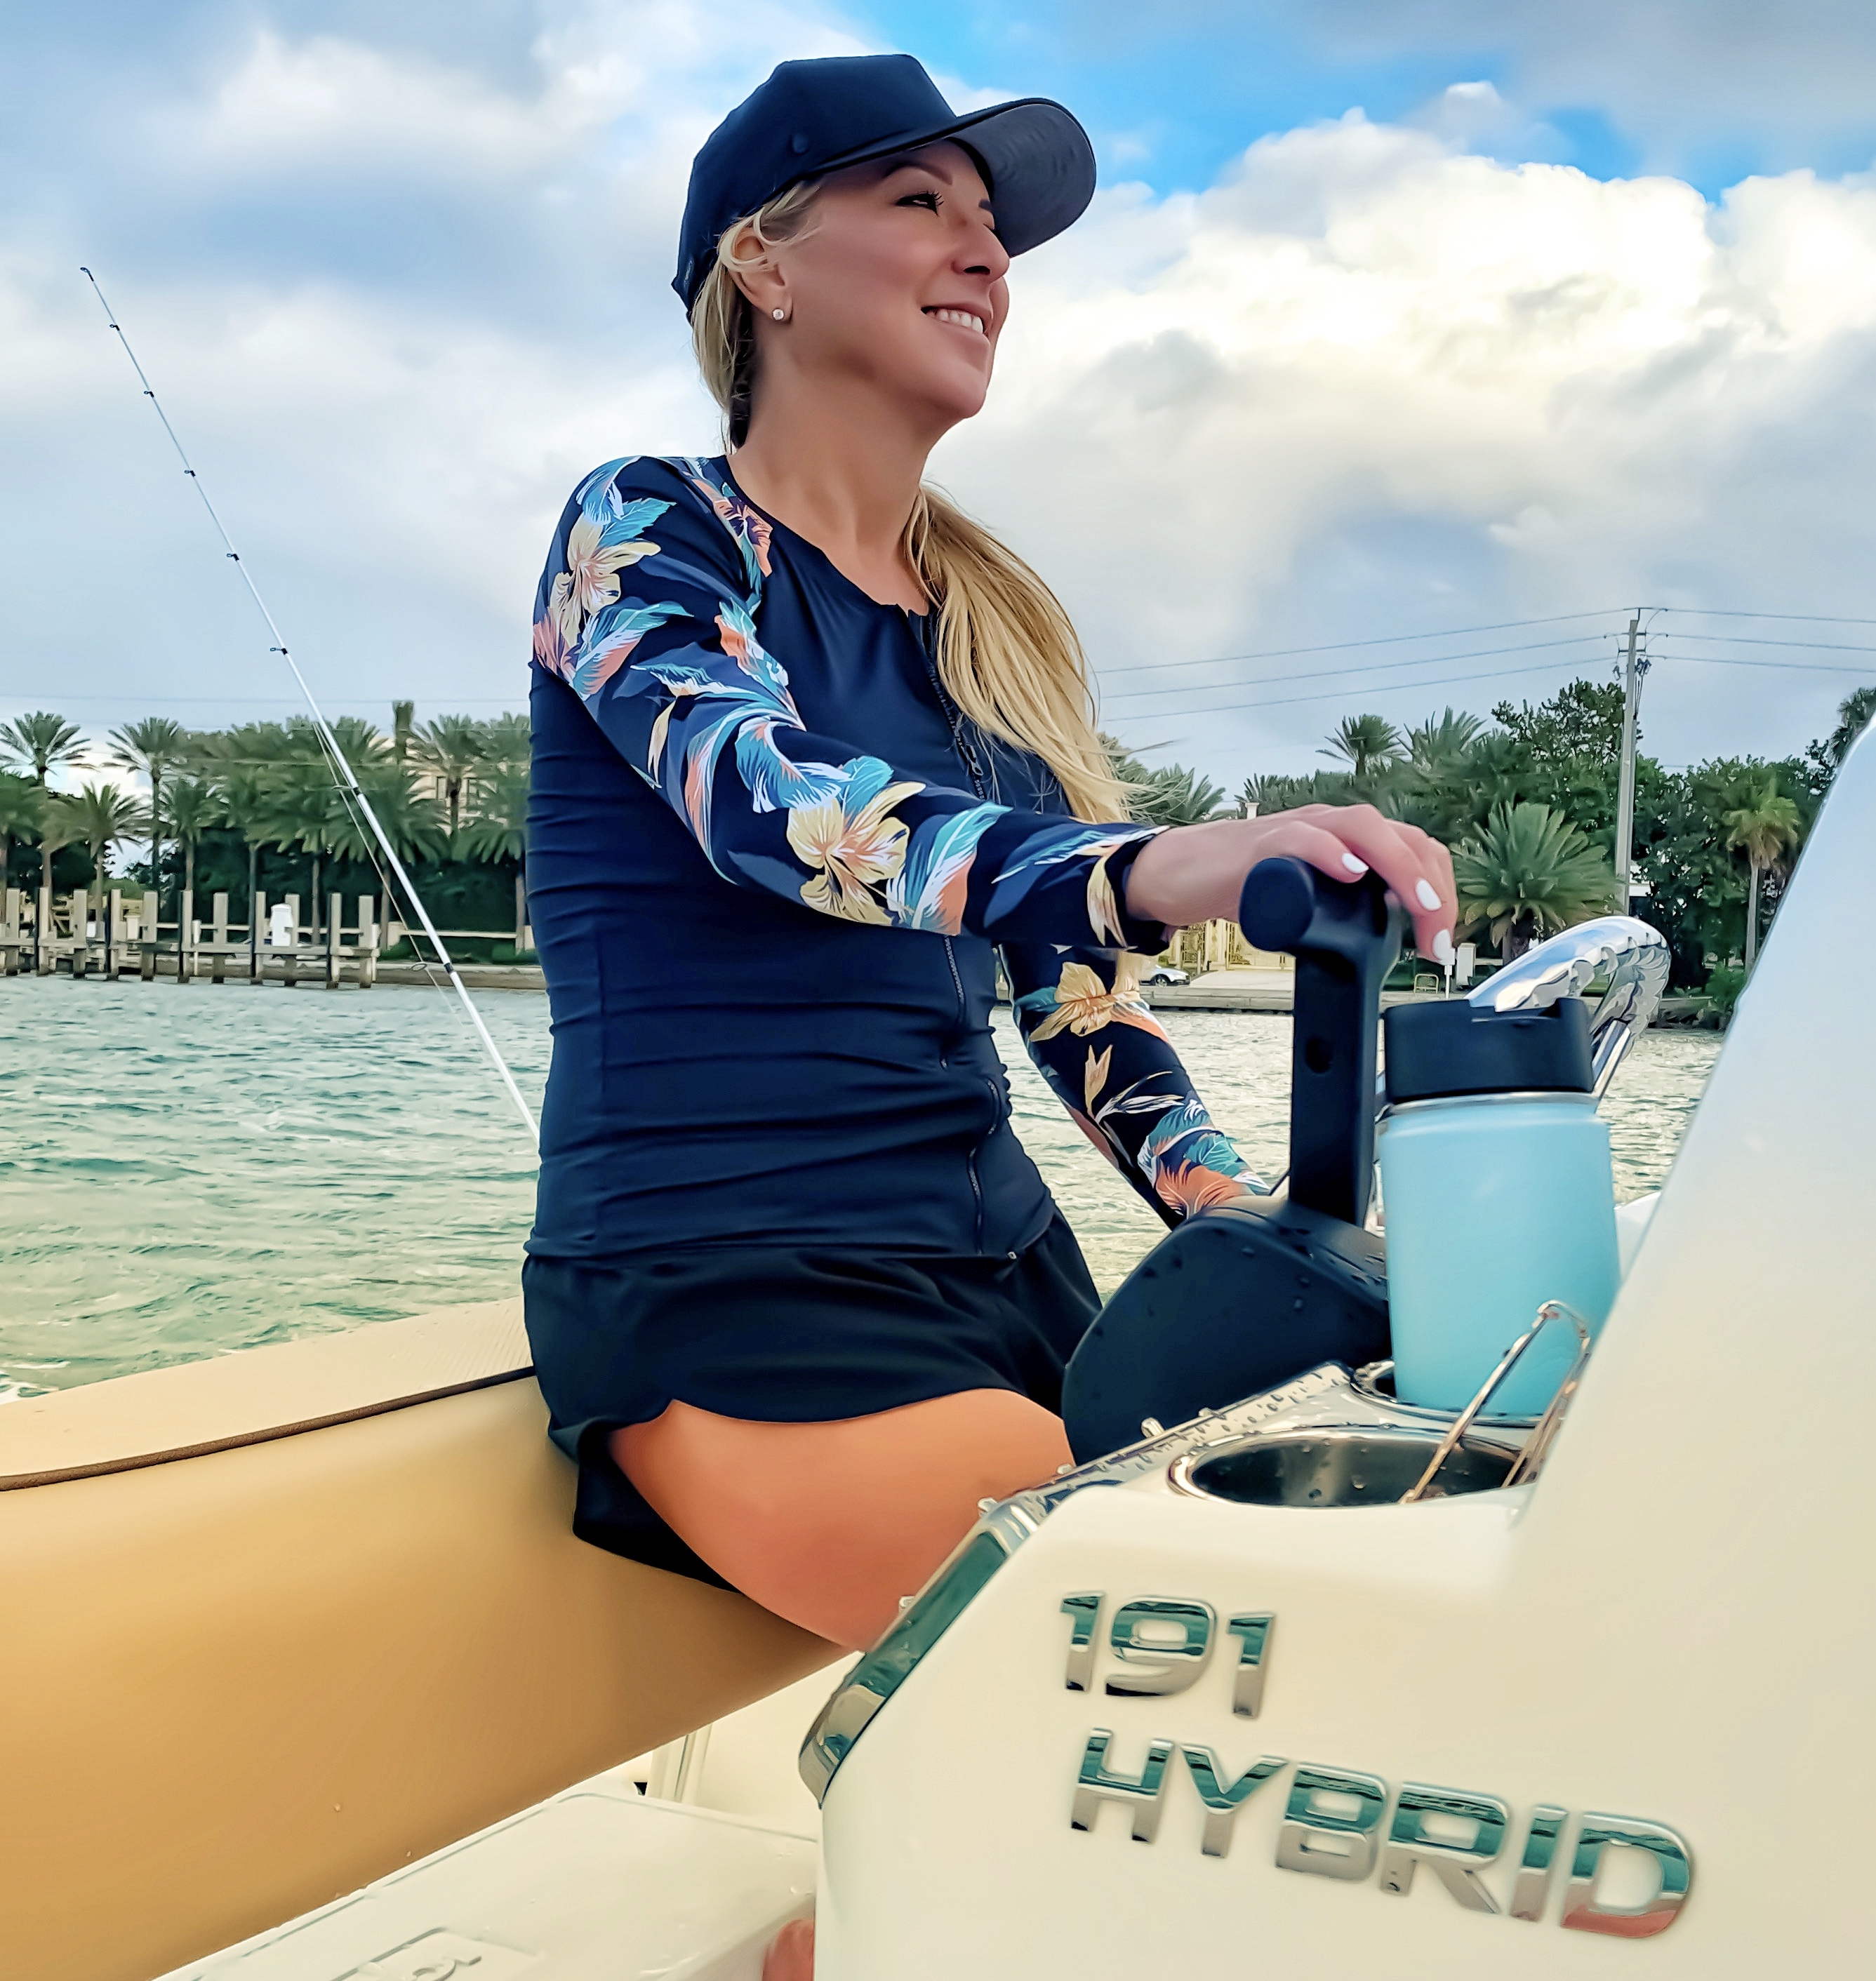 191 Hybrid Boat with Woman Captaining